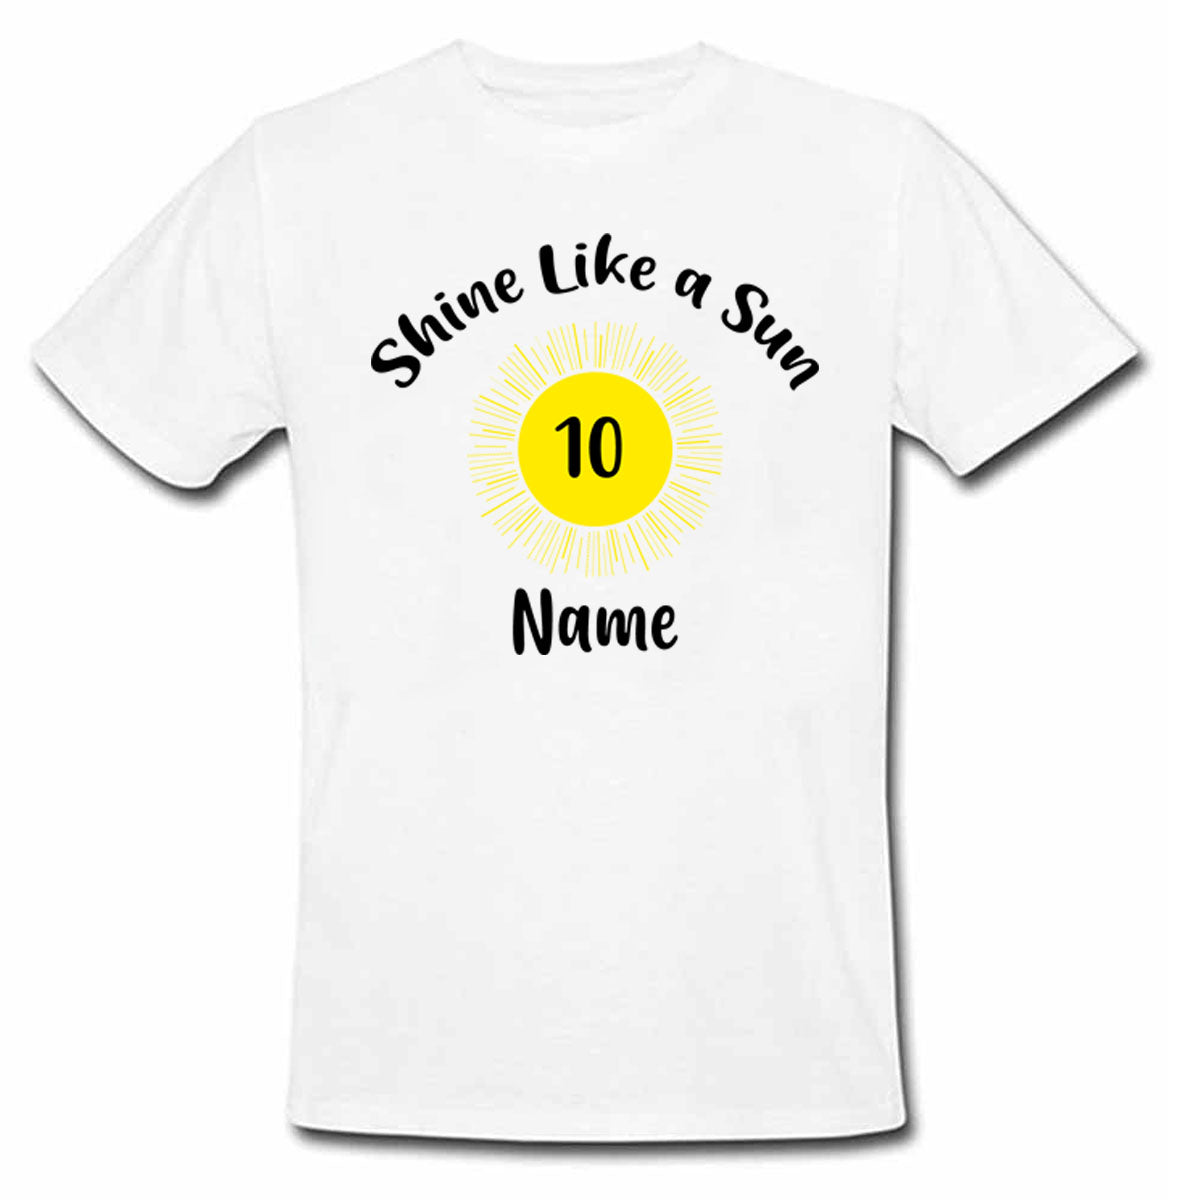 Sprinklecart Shine Like a Sun Shine Printed Personalized 10th Birthday Kids Poly-Cotton T Shirt (White)